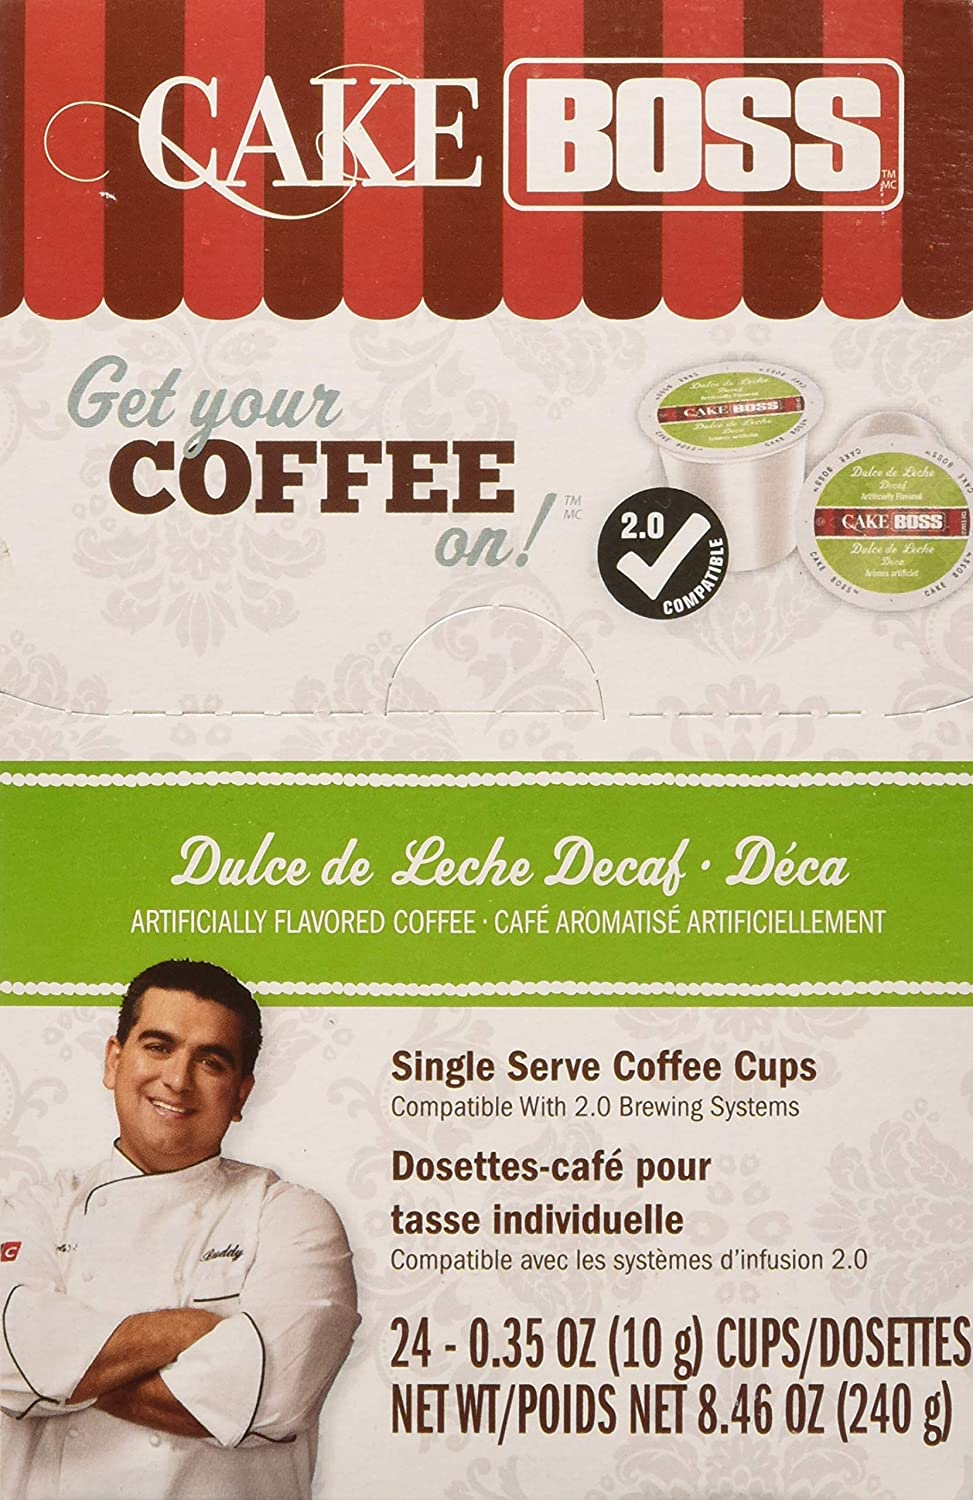 Cake Boss Coffee Dulce De Leche Decaf, 24 Count: Amazon.com: Grocery & Gourmet Food